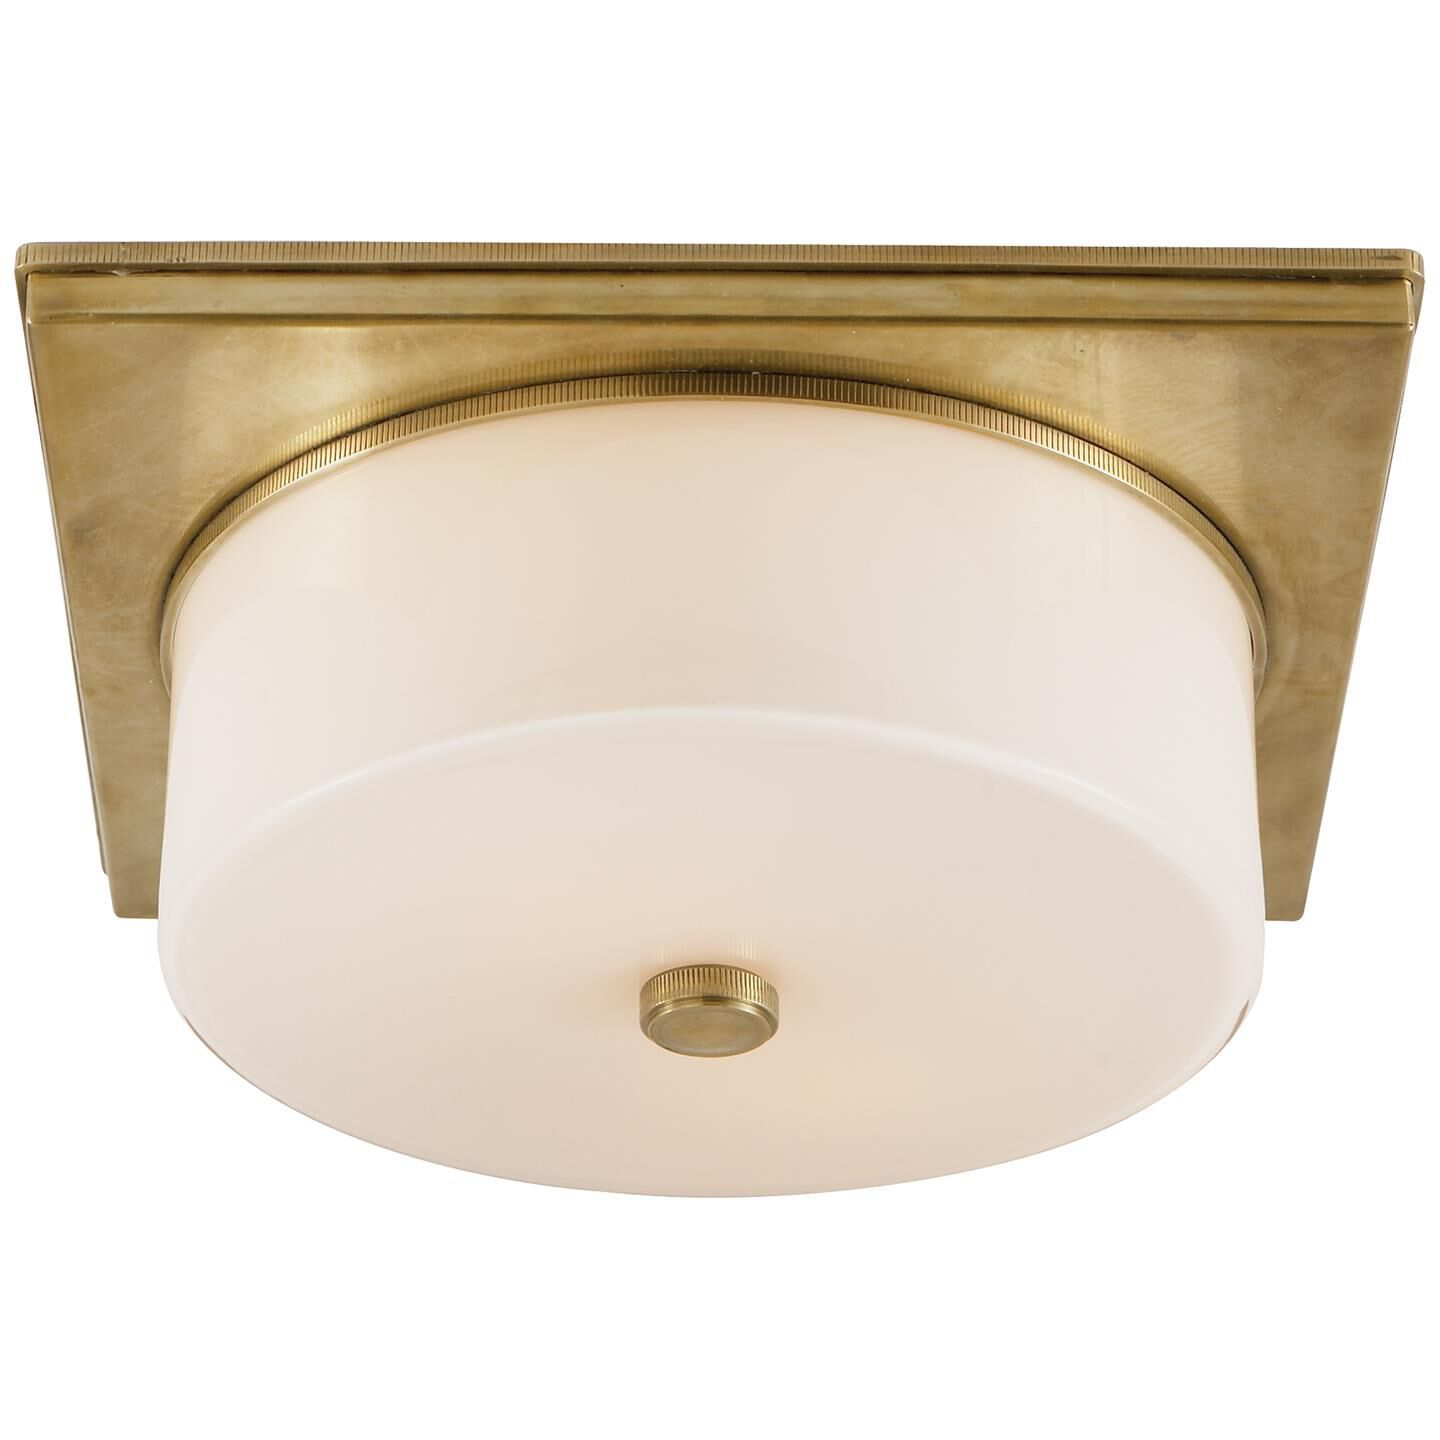 Thomas O'Brien Newhouse Block 12 Inch 2 Light Flush Mount by Visual Comfort and Co. Newhouse Block Flush Mount by Visual Comfort and Co. - TOB 4216HAB-WG